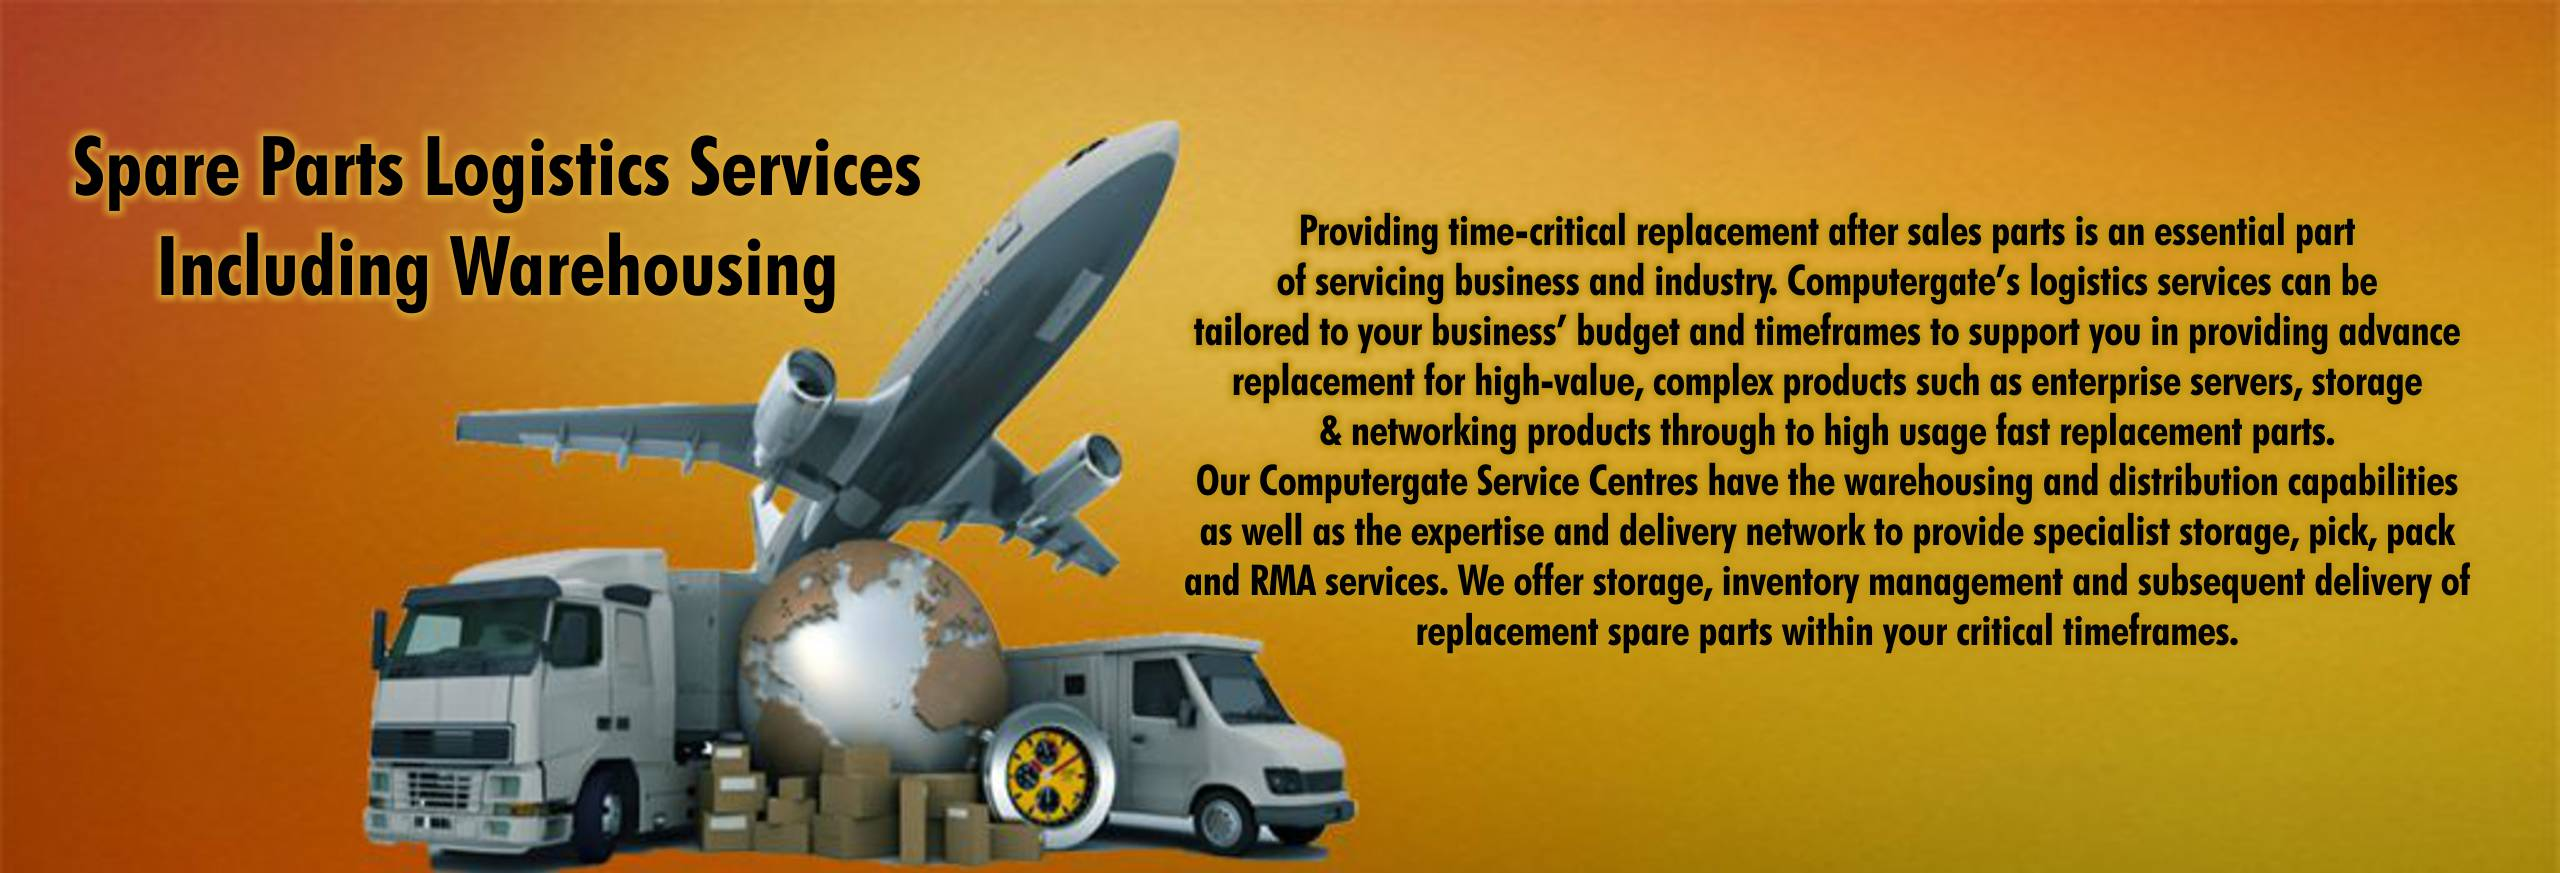 logistics-page-banner-2-2560-x-873